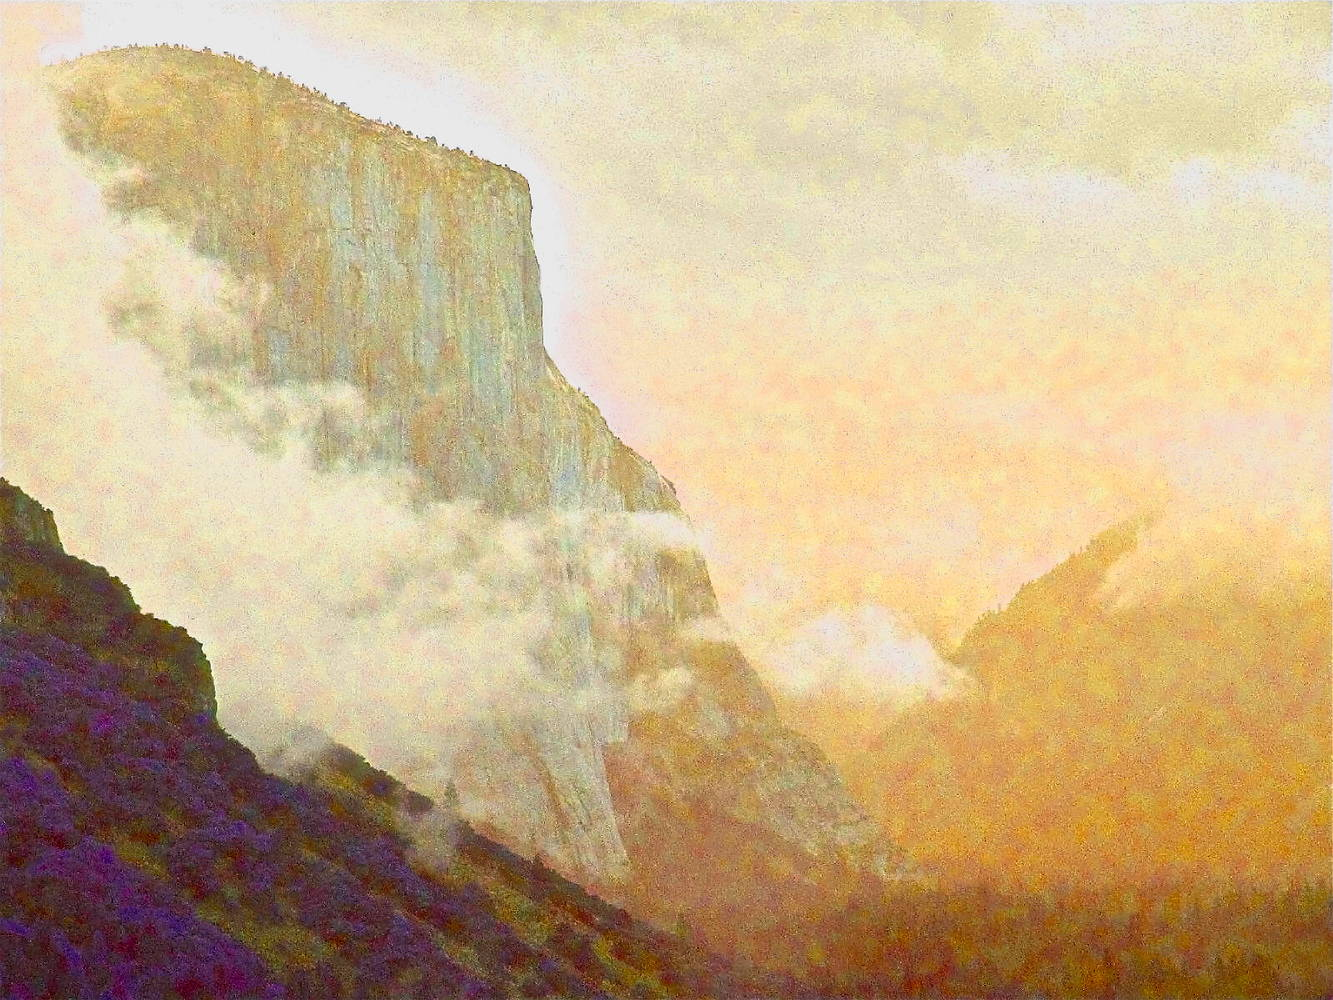 Painting EL CAPITAN by Joeann Edmonds-Matthew